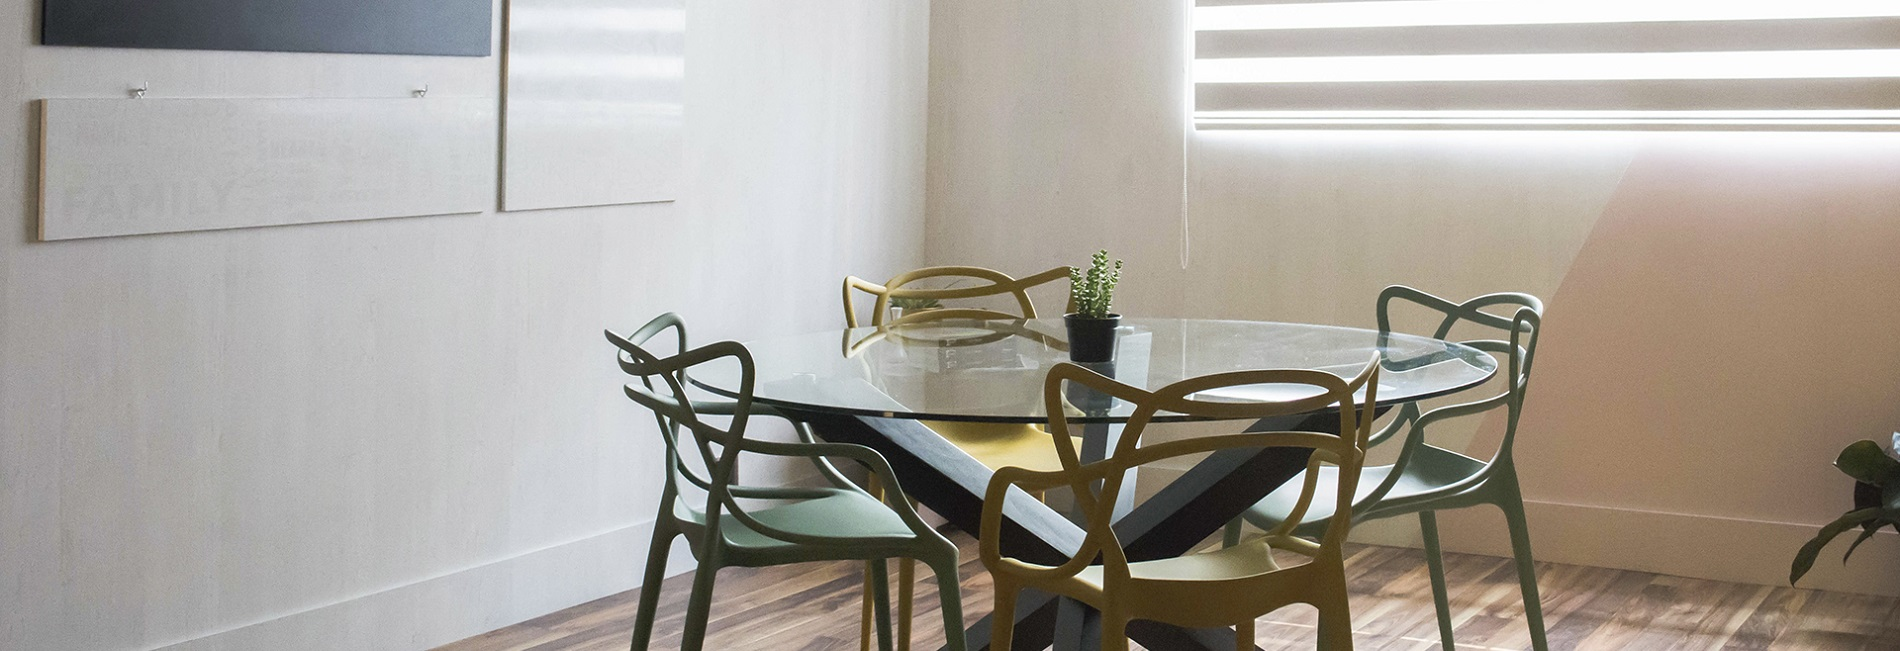 Formica Surfaces Studio White Painted Wood Just Rose LoveWords